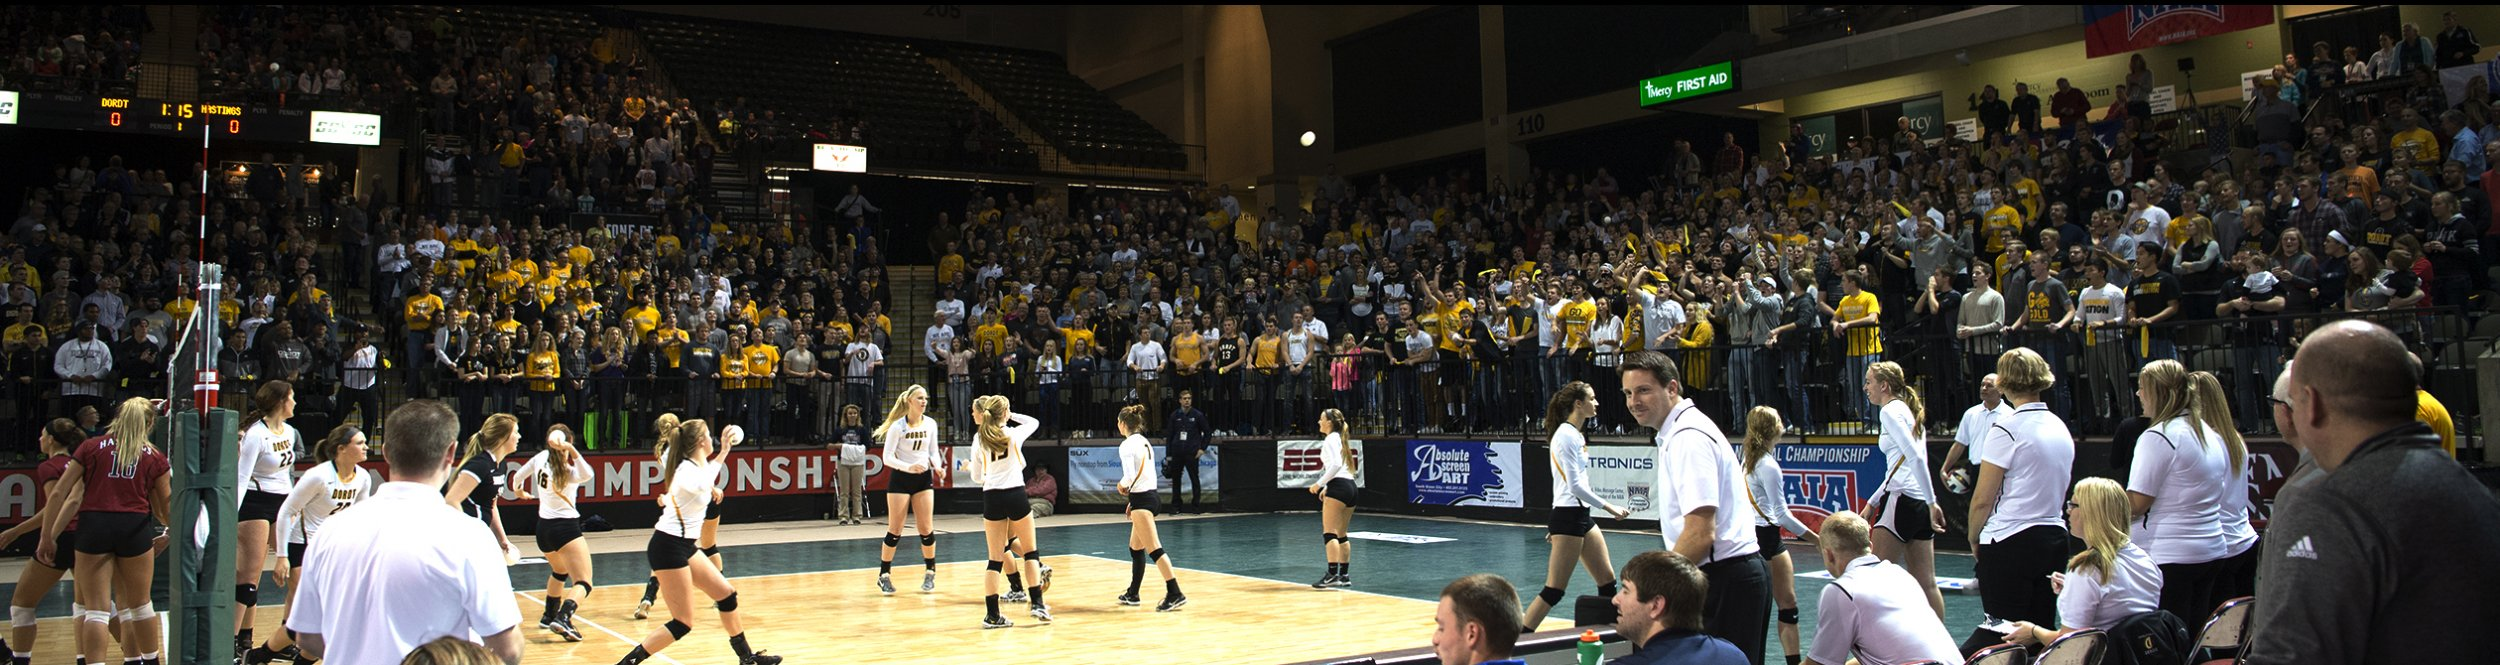 The women's volleyball team spreads out on a volleyball court surrounded by fans.